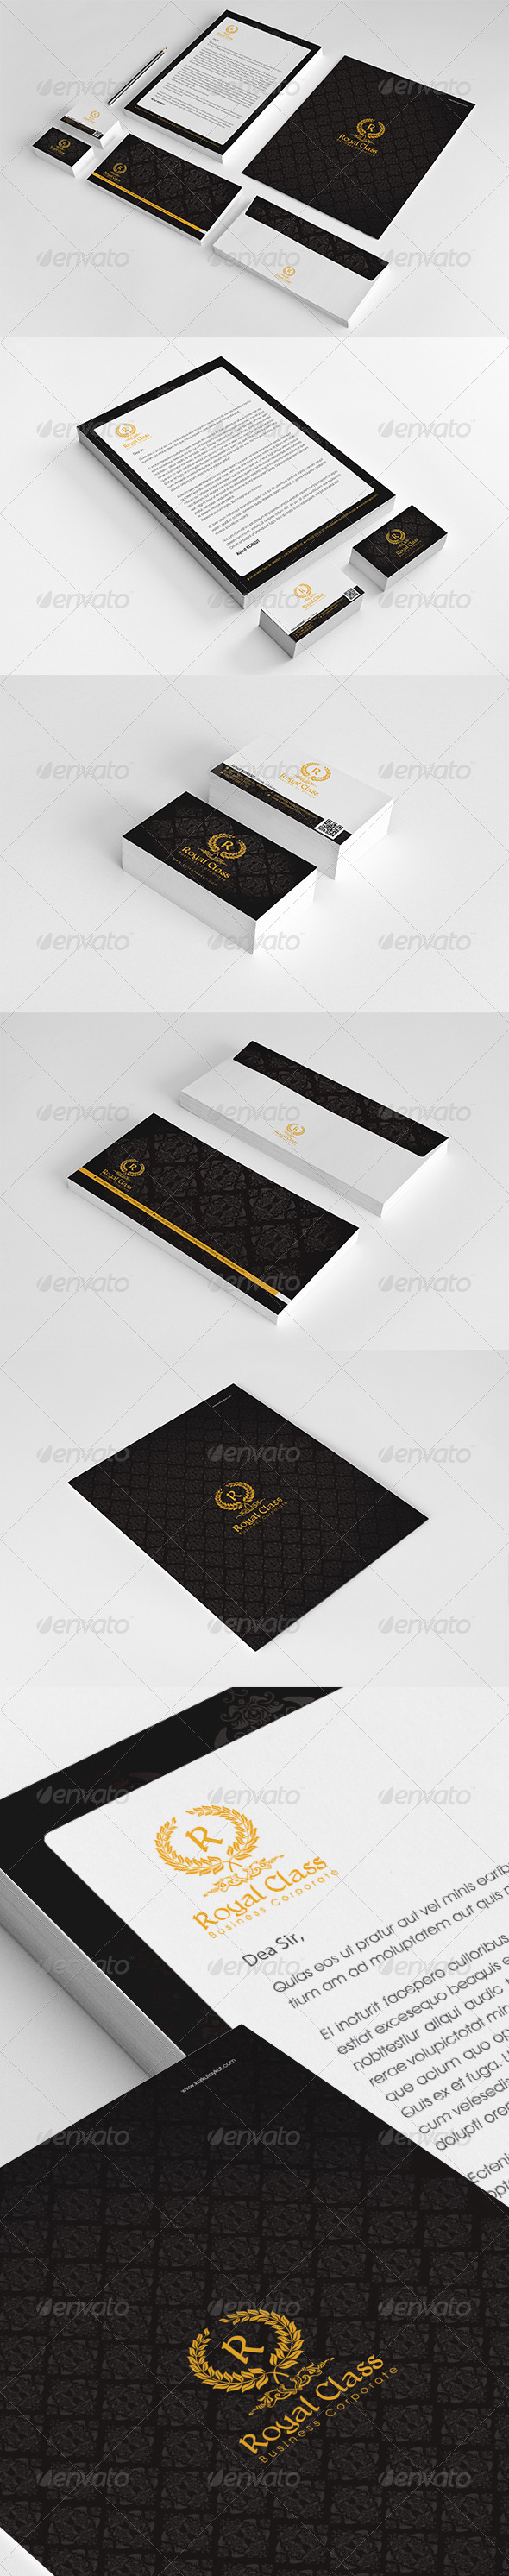 GraphicRiver Royal Class Corporate Identity Package v2 6288938